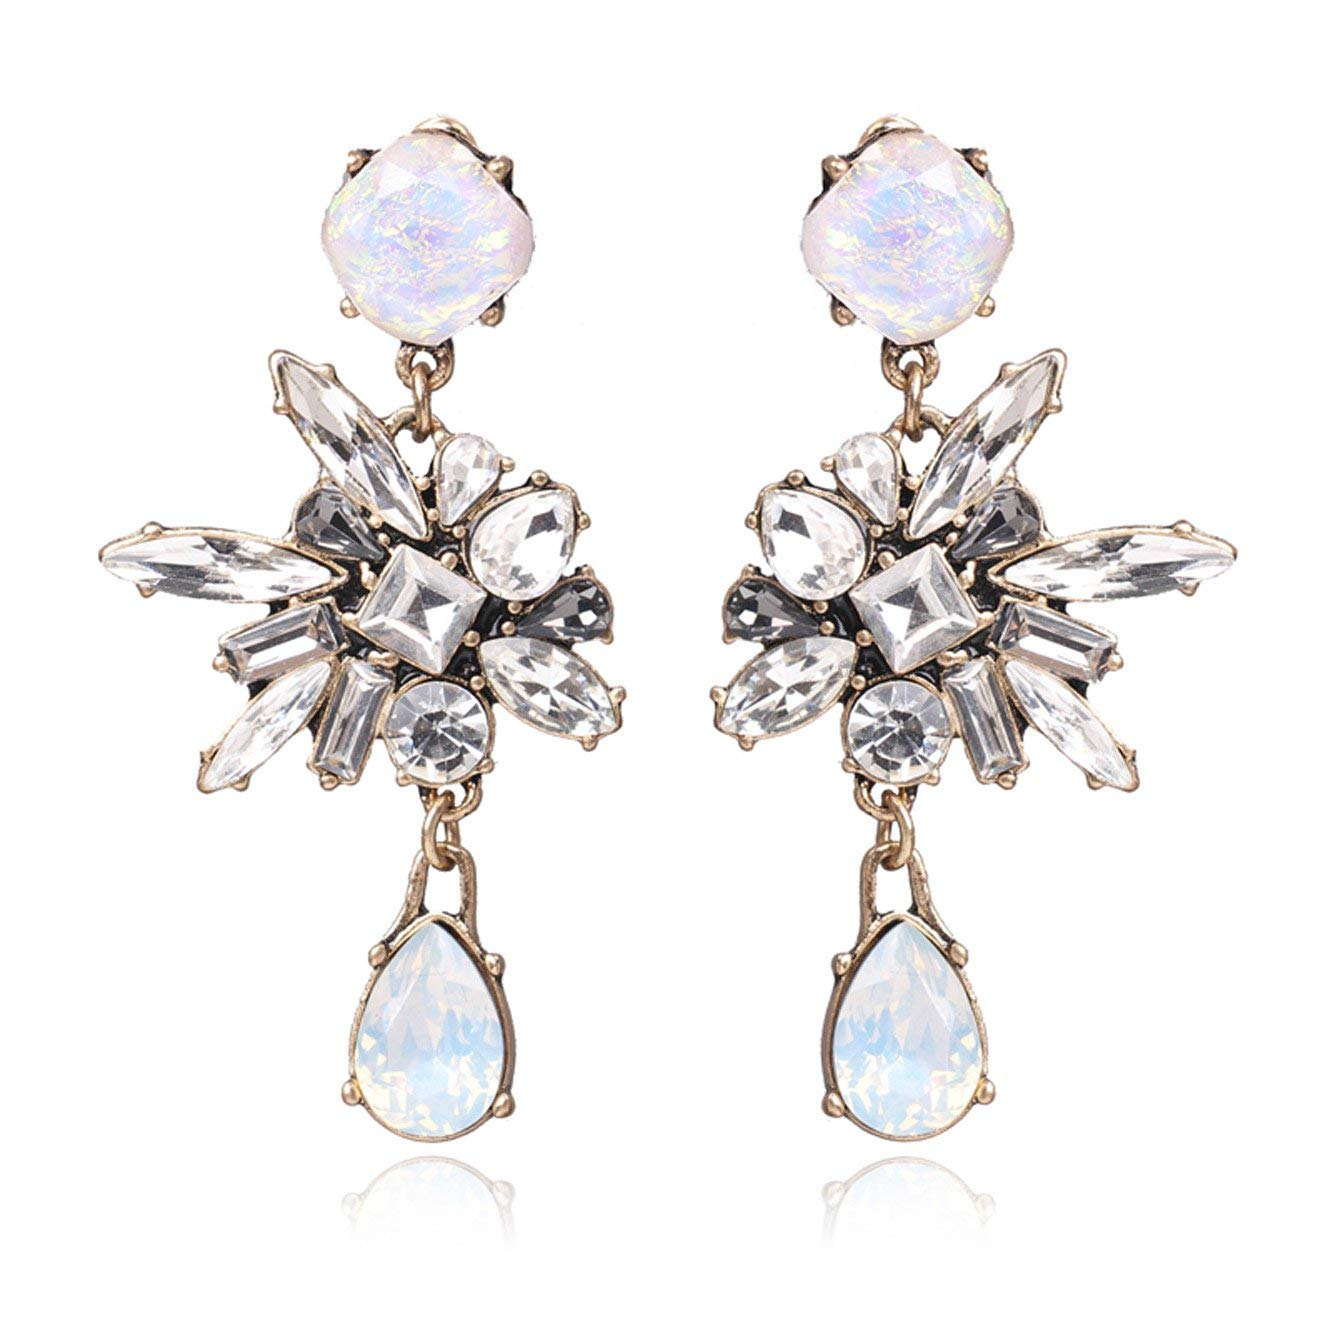 cf6fbce7b7 Get Quotations · Unicra Vintage Long Crystal Dangle Earrings Studs Wedding Bridal  Chandelier Earrings for Women and Girls